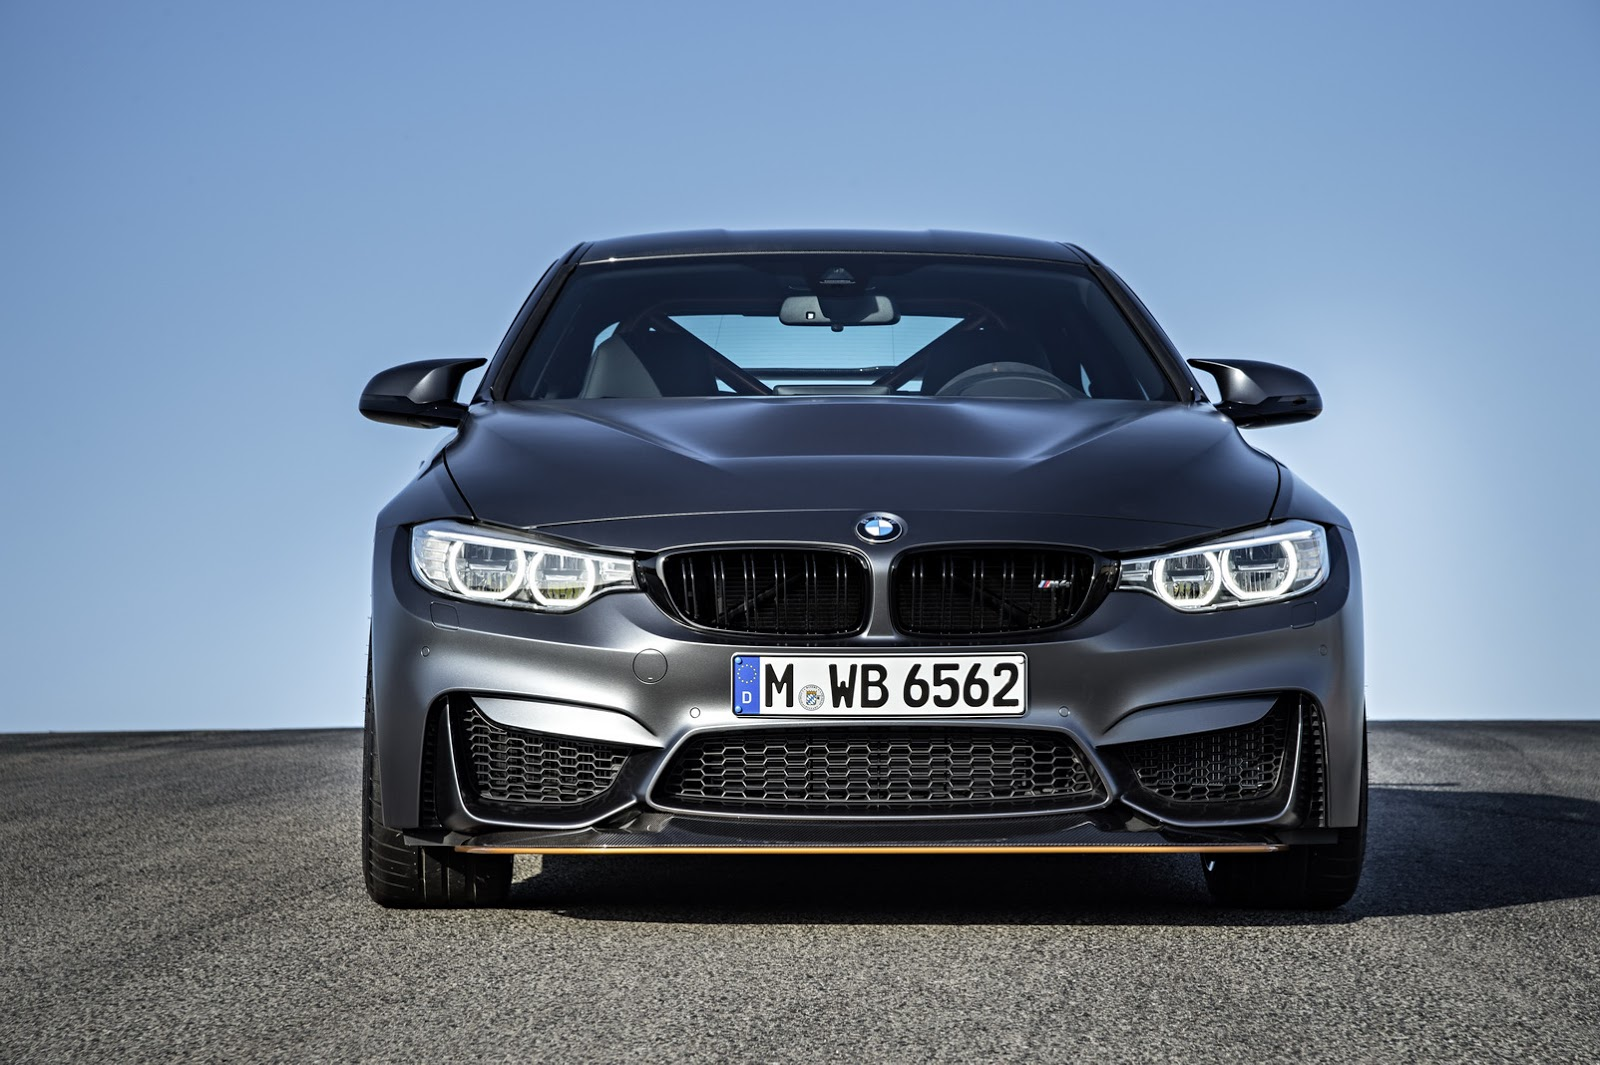 New 2016 M4 GTS Is The Fastest Production BMW Ever And 300 Of Them